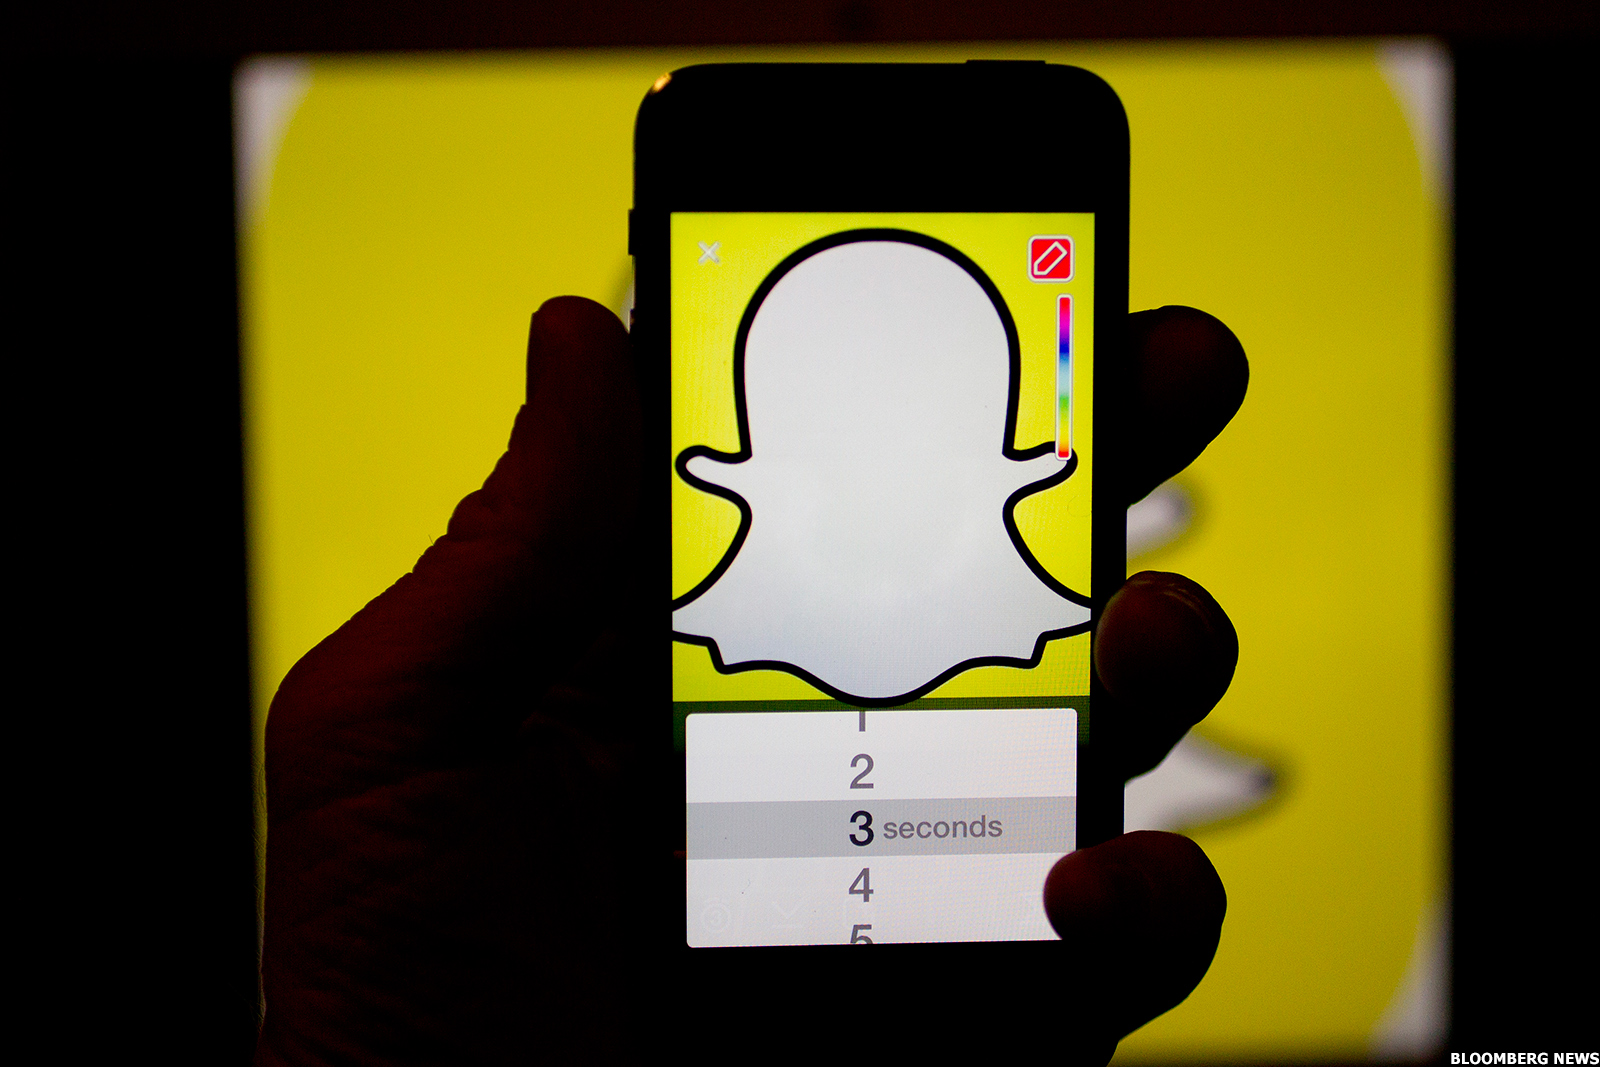 Why snaps snap stock could soon snap back thestreet buycottarizona Image collections